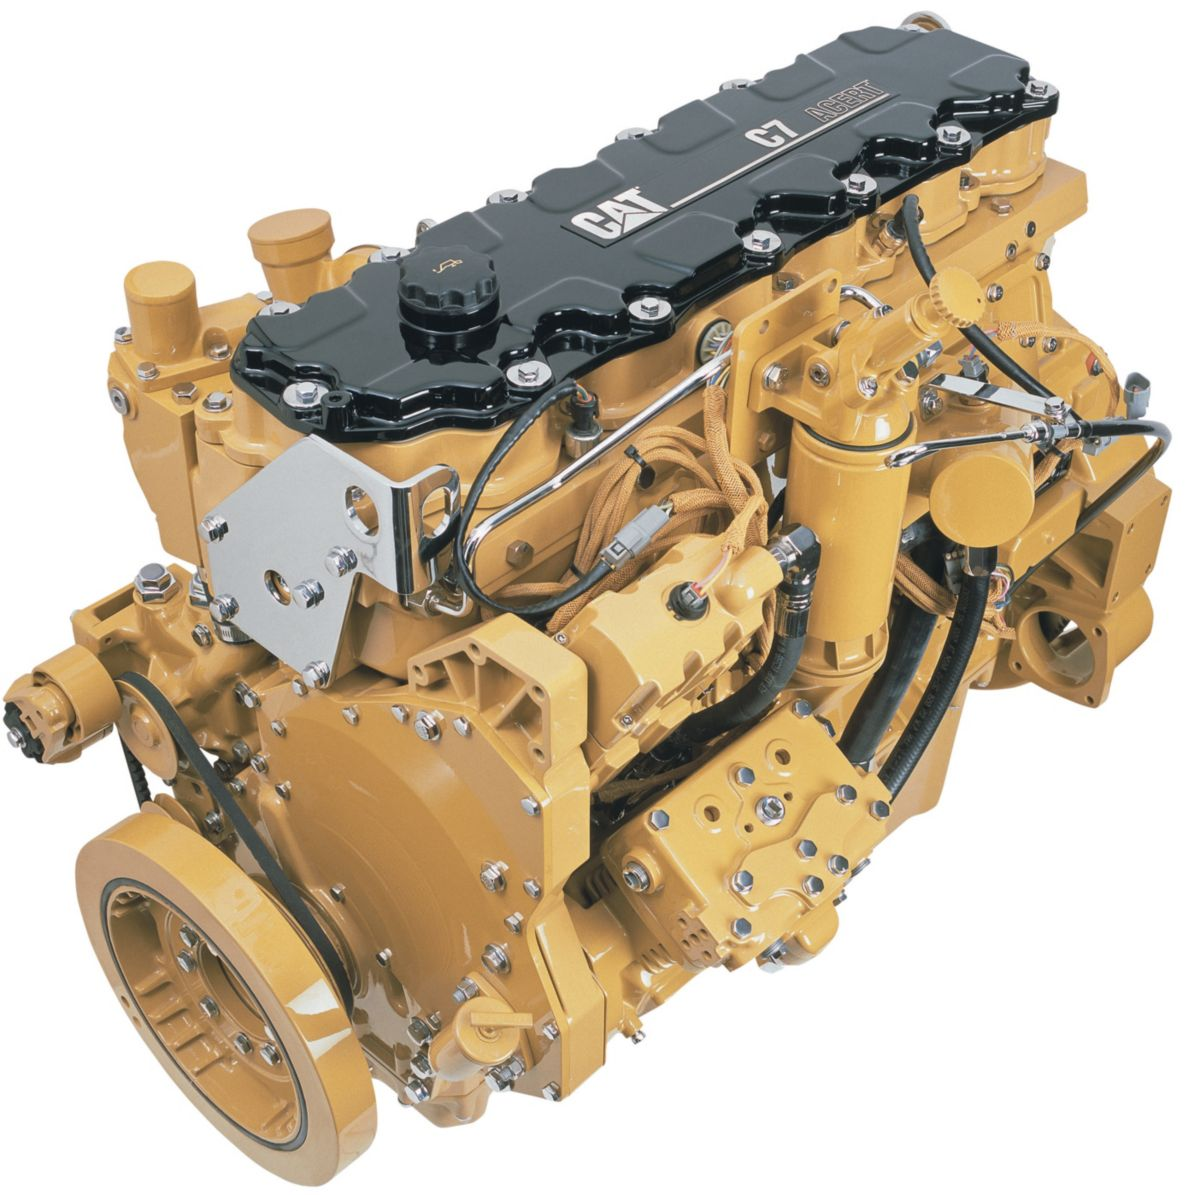 2004 Cat 3126 Engine Diagram Opinions About Wiring C7 For Sale Rh Ars Dkprogress Info Exploded Sensor